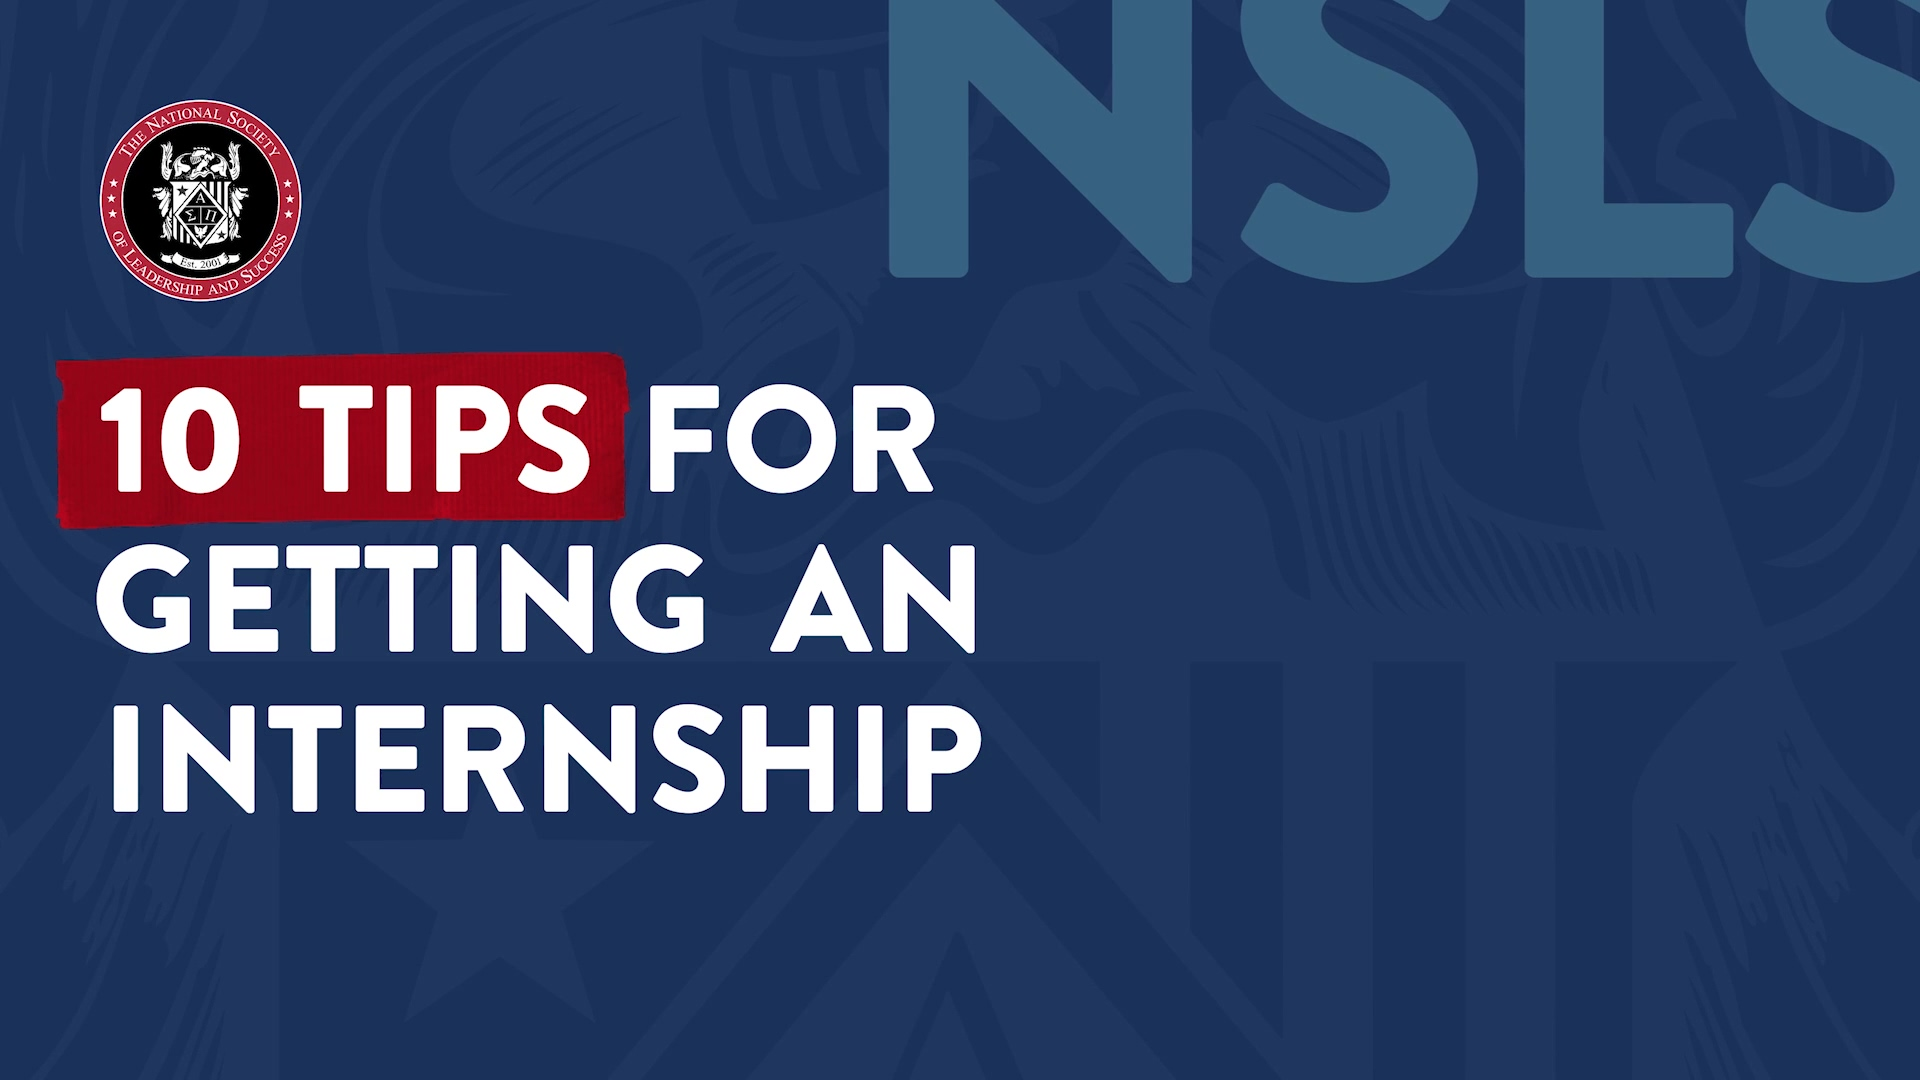 10 Tips for Getting an Internship